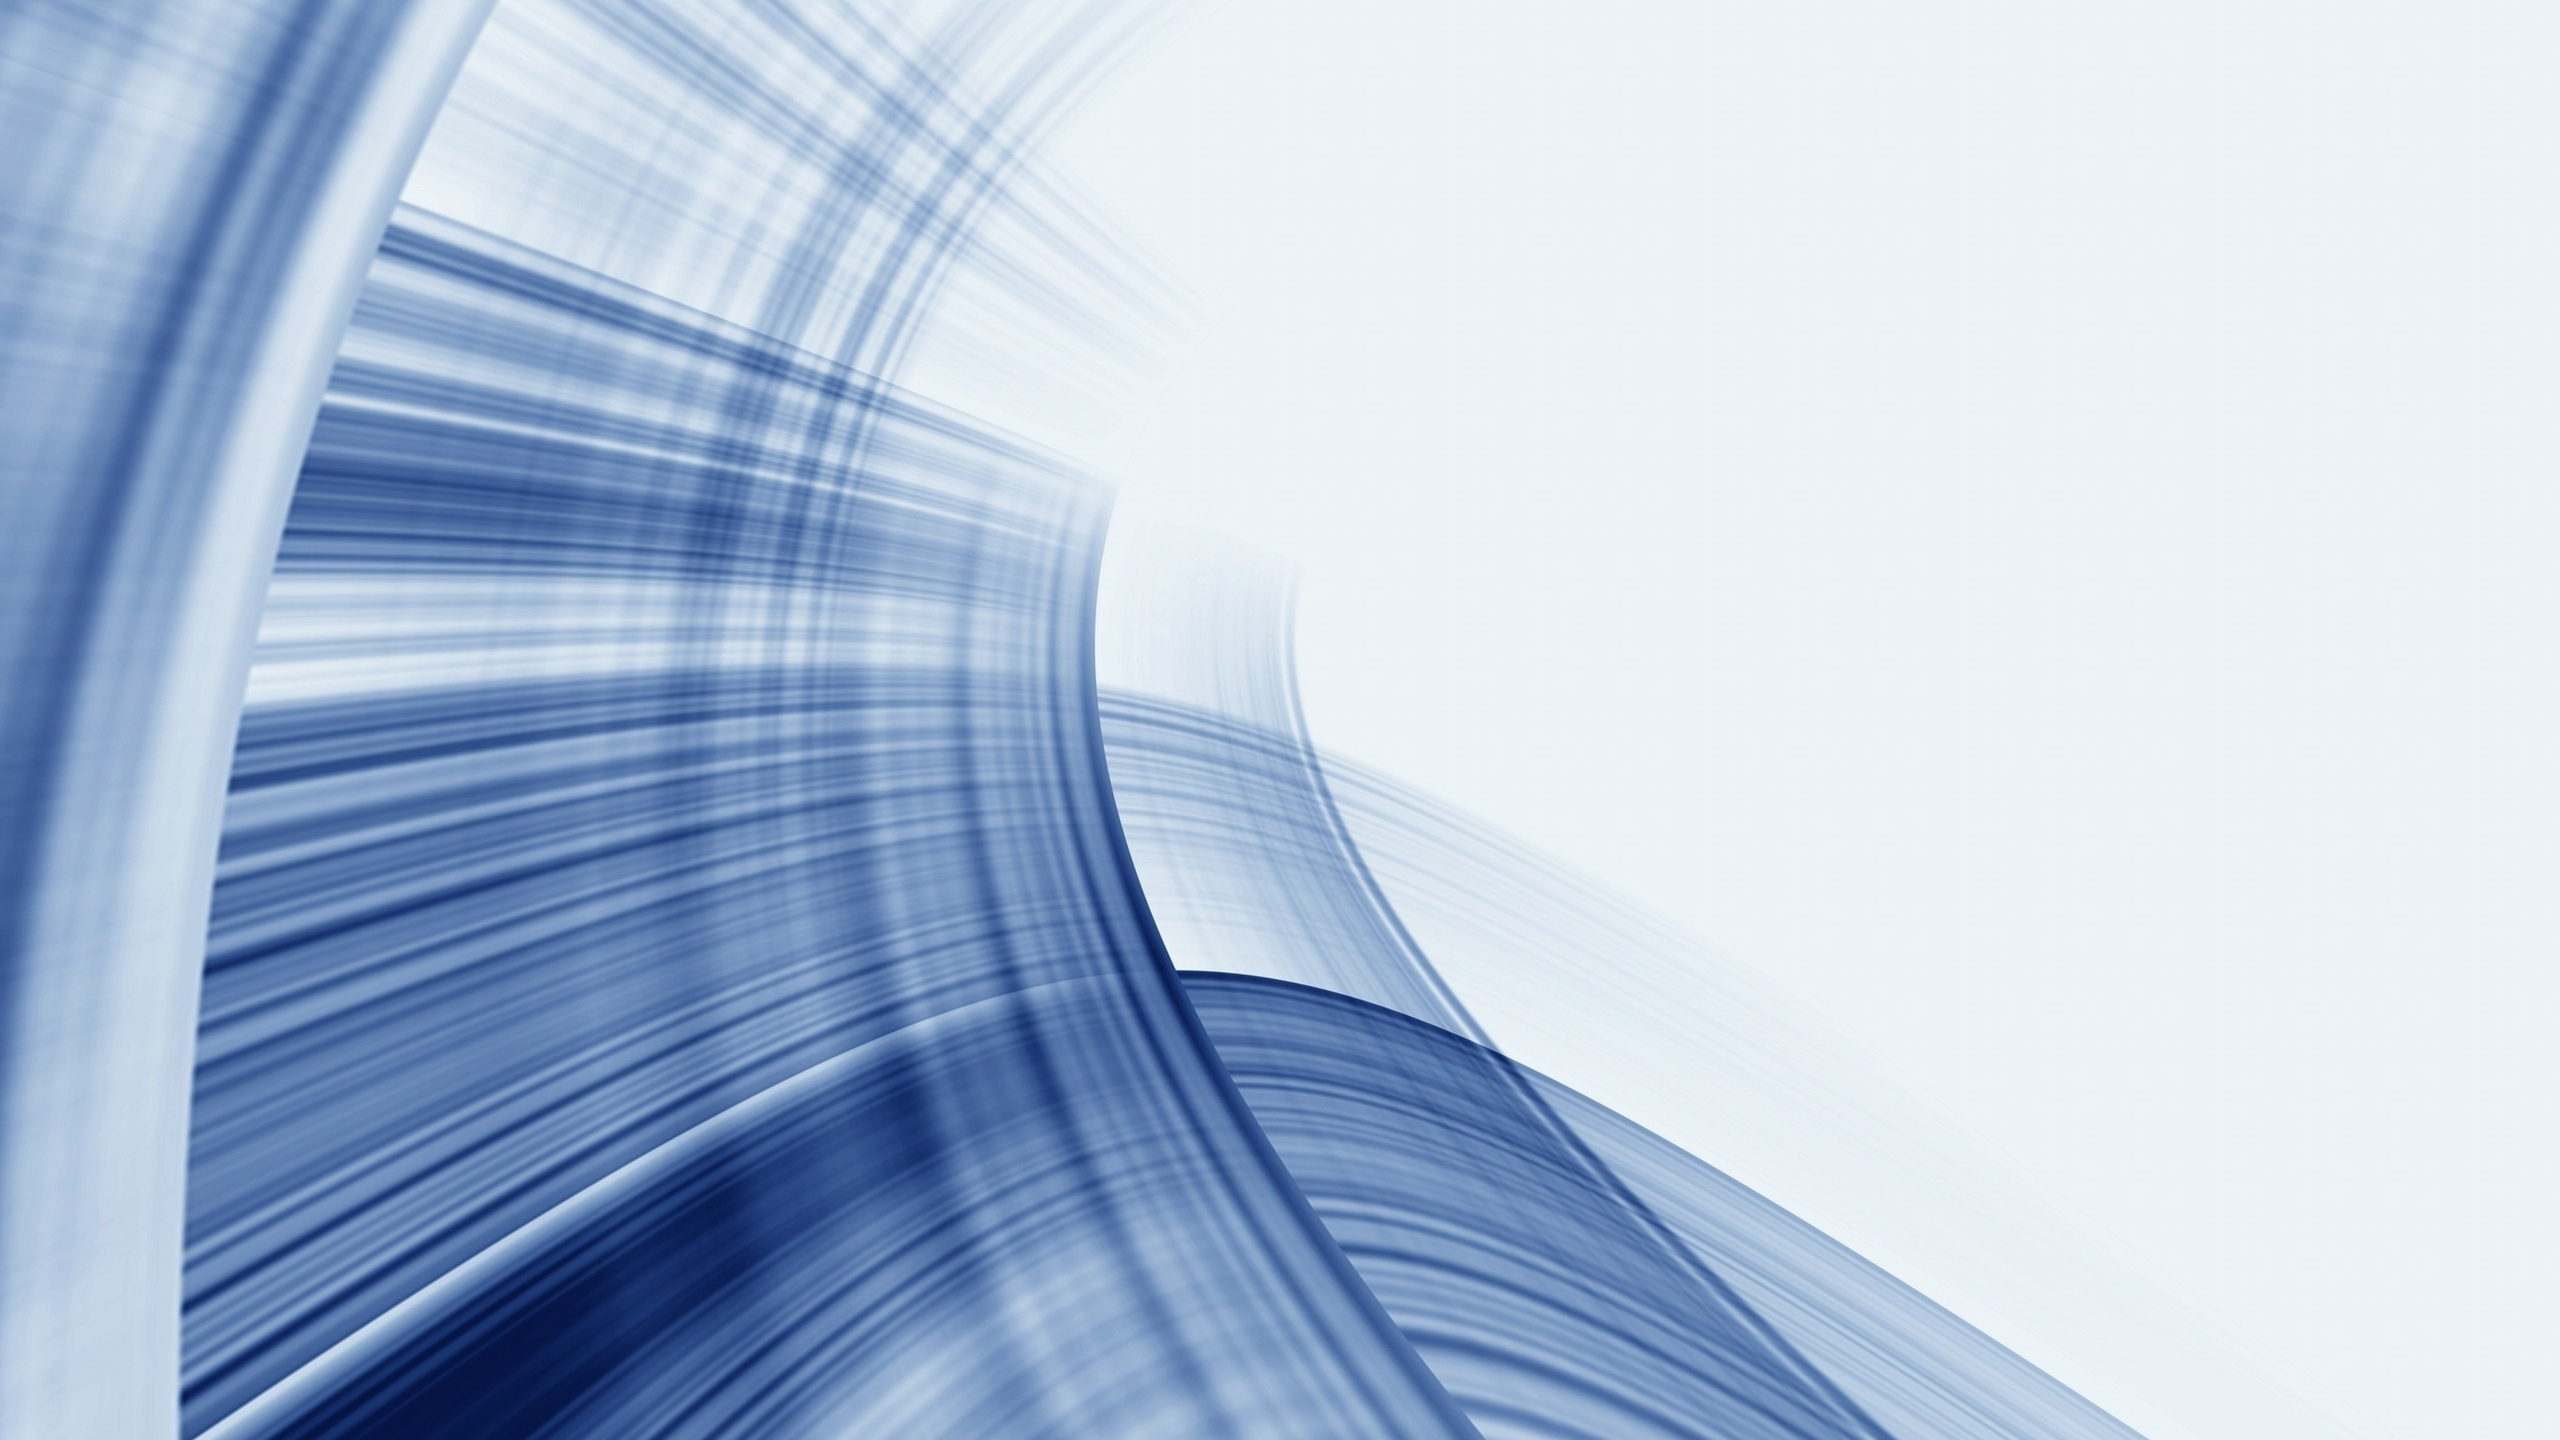 Blue and White wallpaper 2560x1440 44334 2560x1440